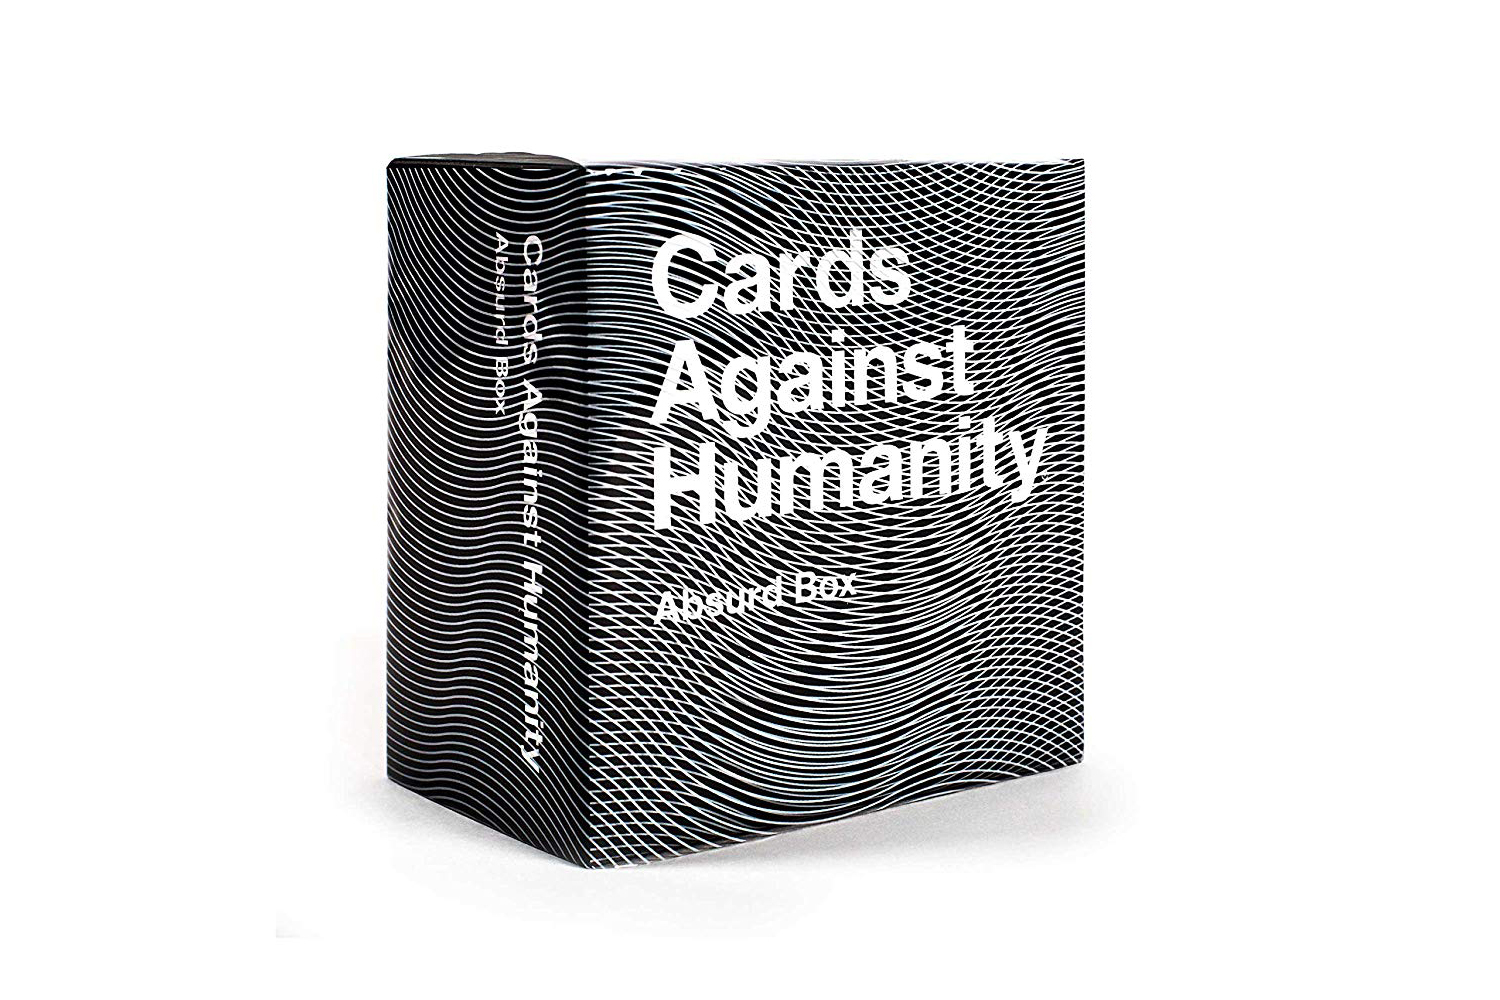 Cards Against Humanity expansion